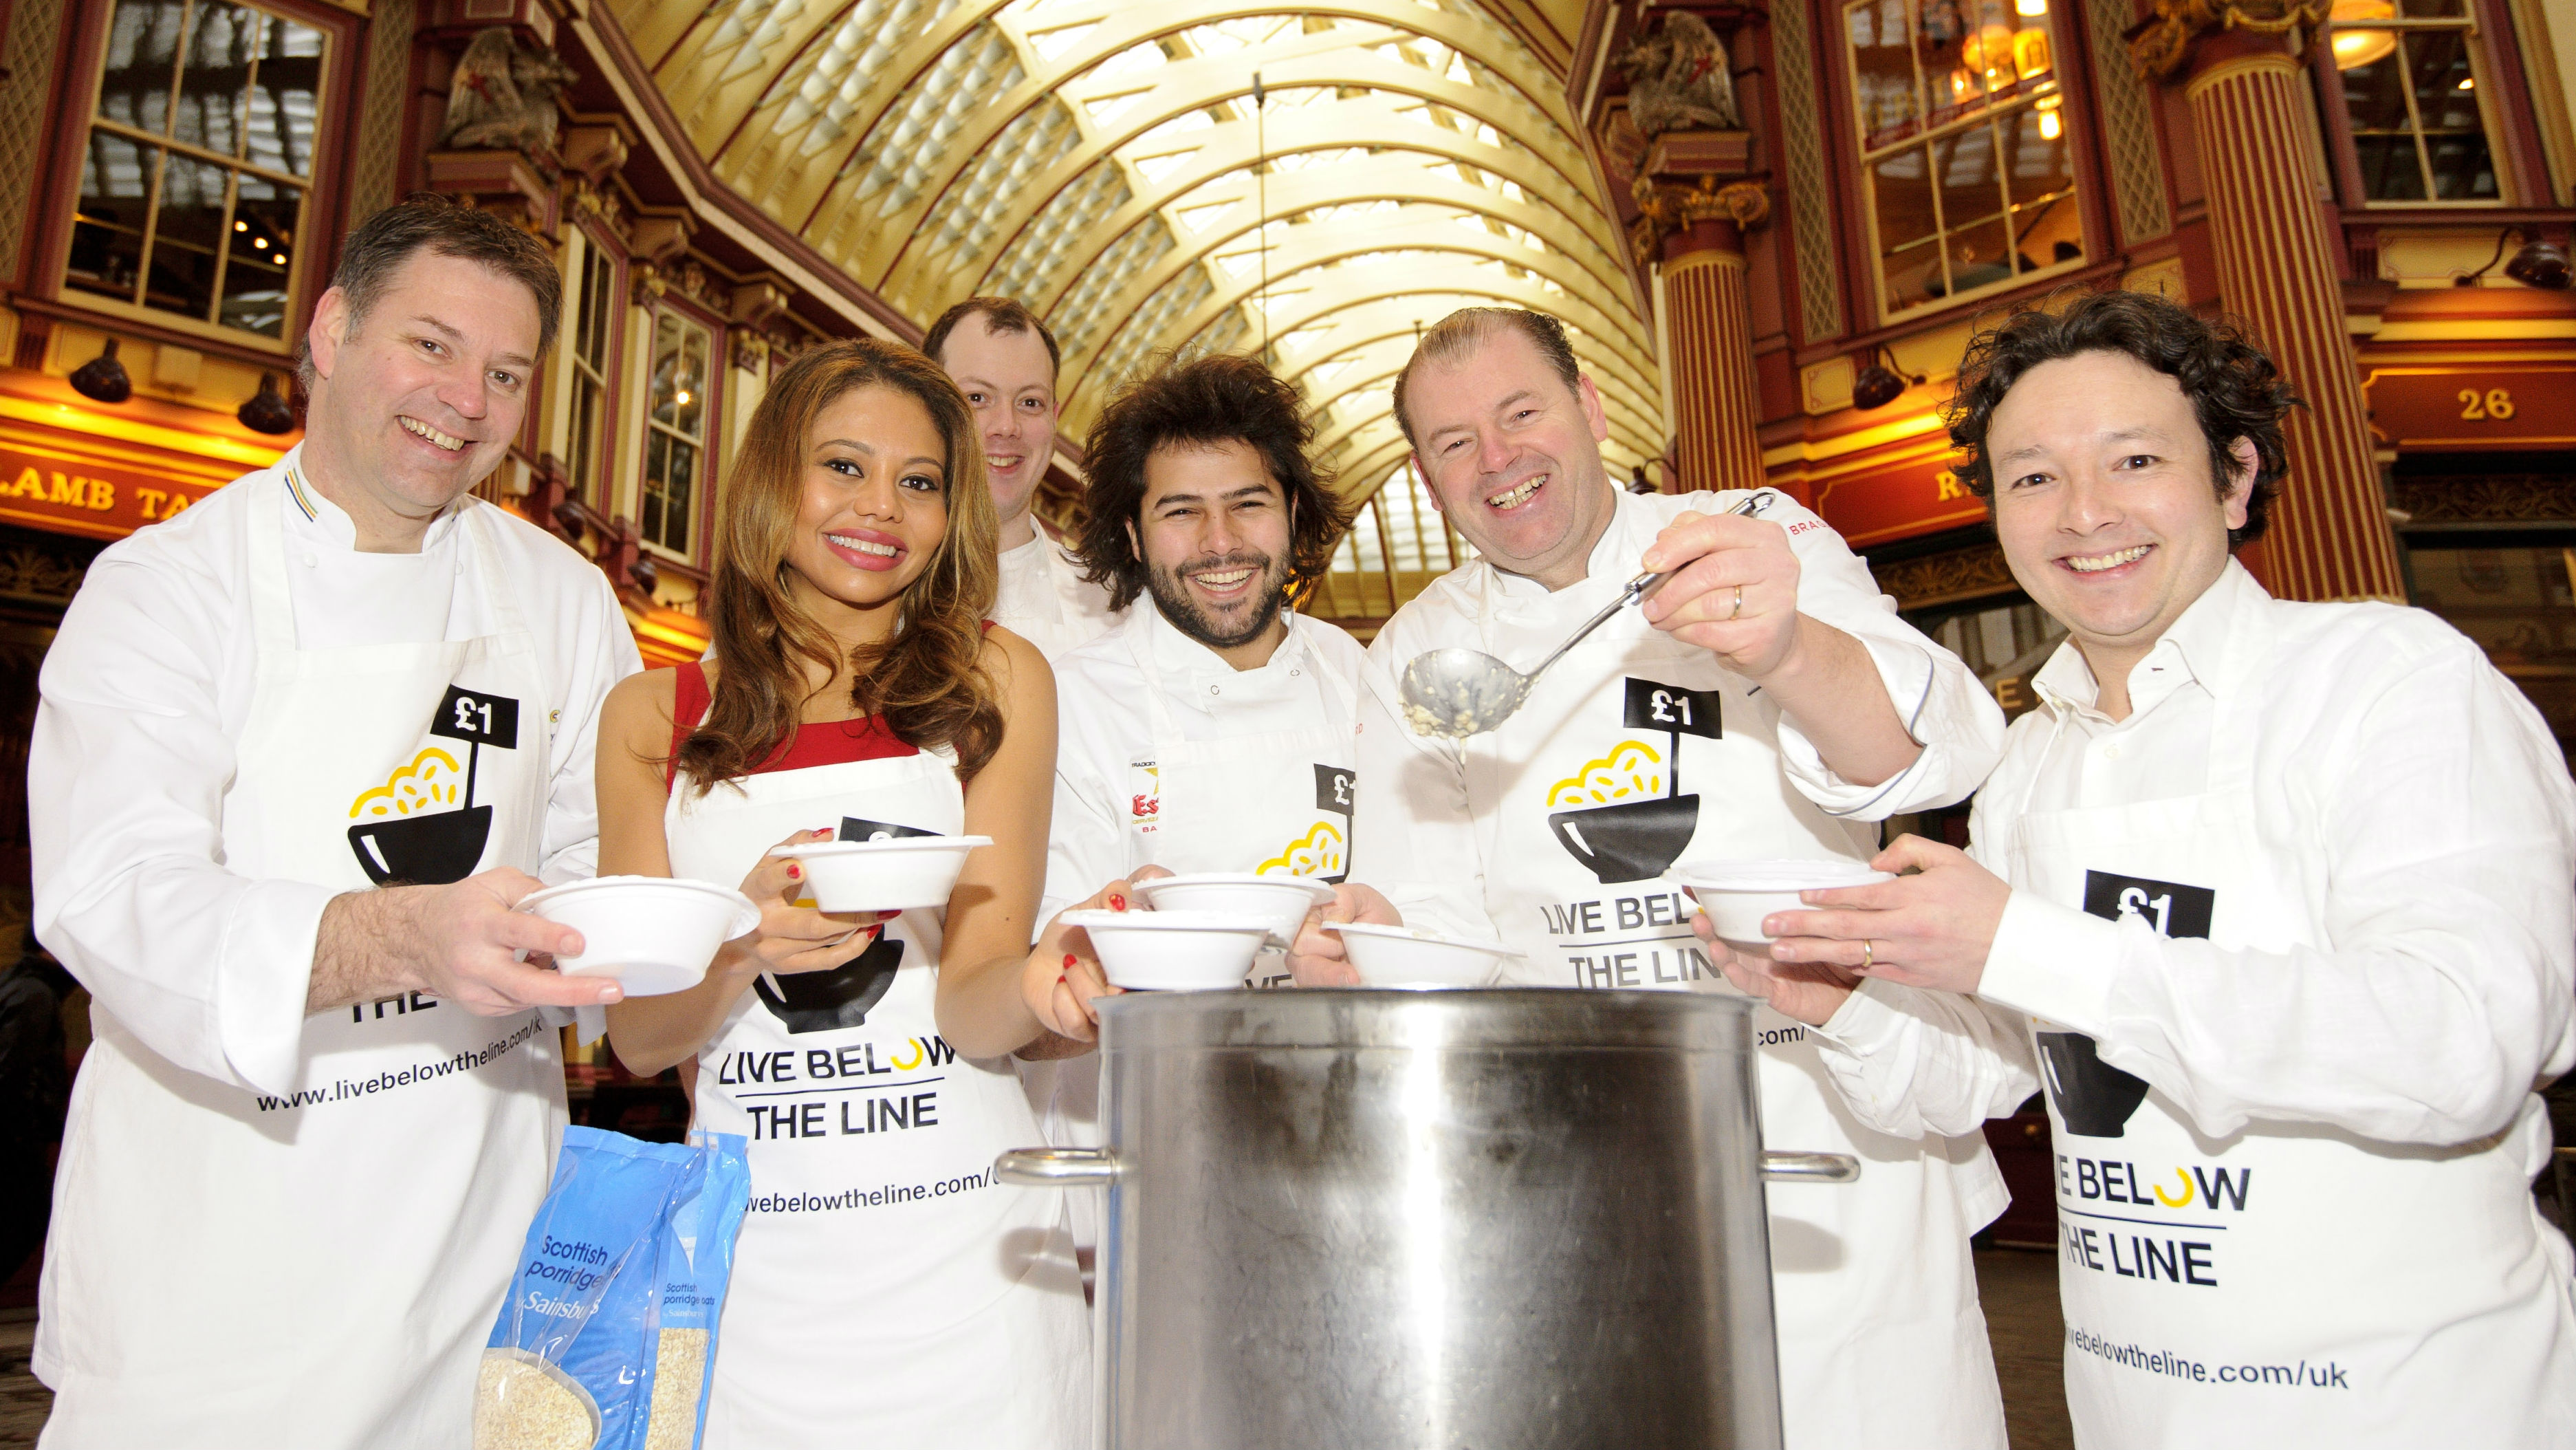 top chefs support living below the line